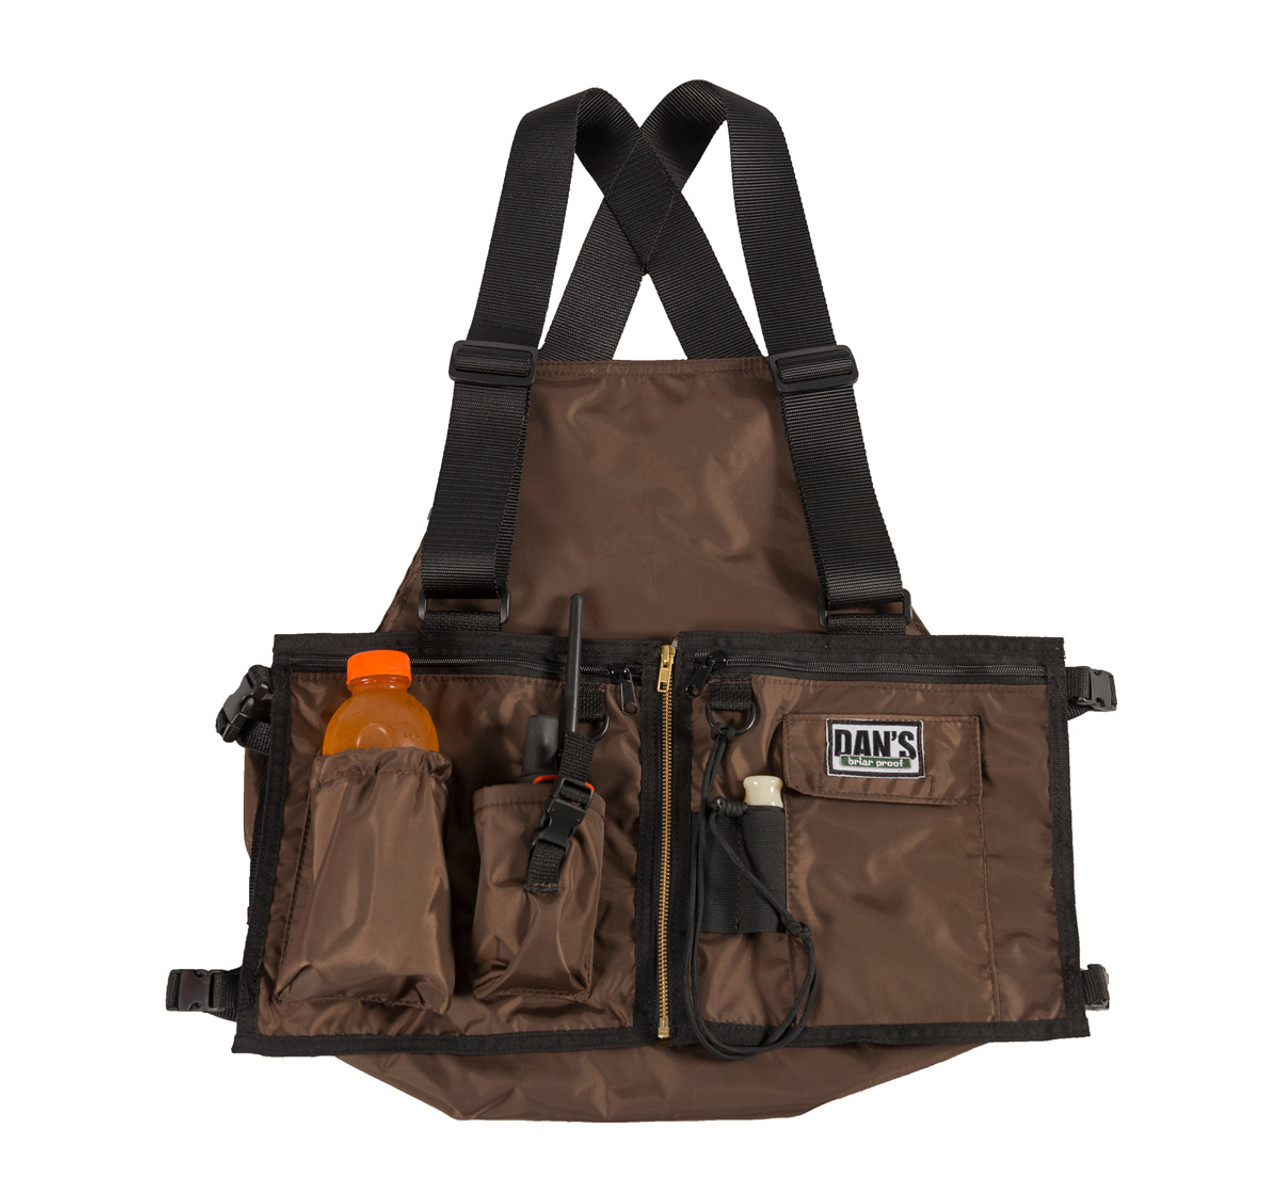 Dans Hunting Gear Ultimate Strap Vest (Brown)